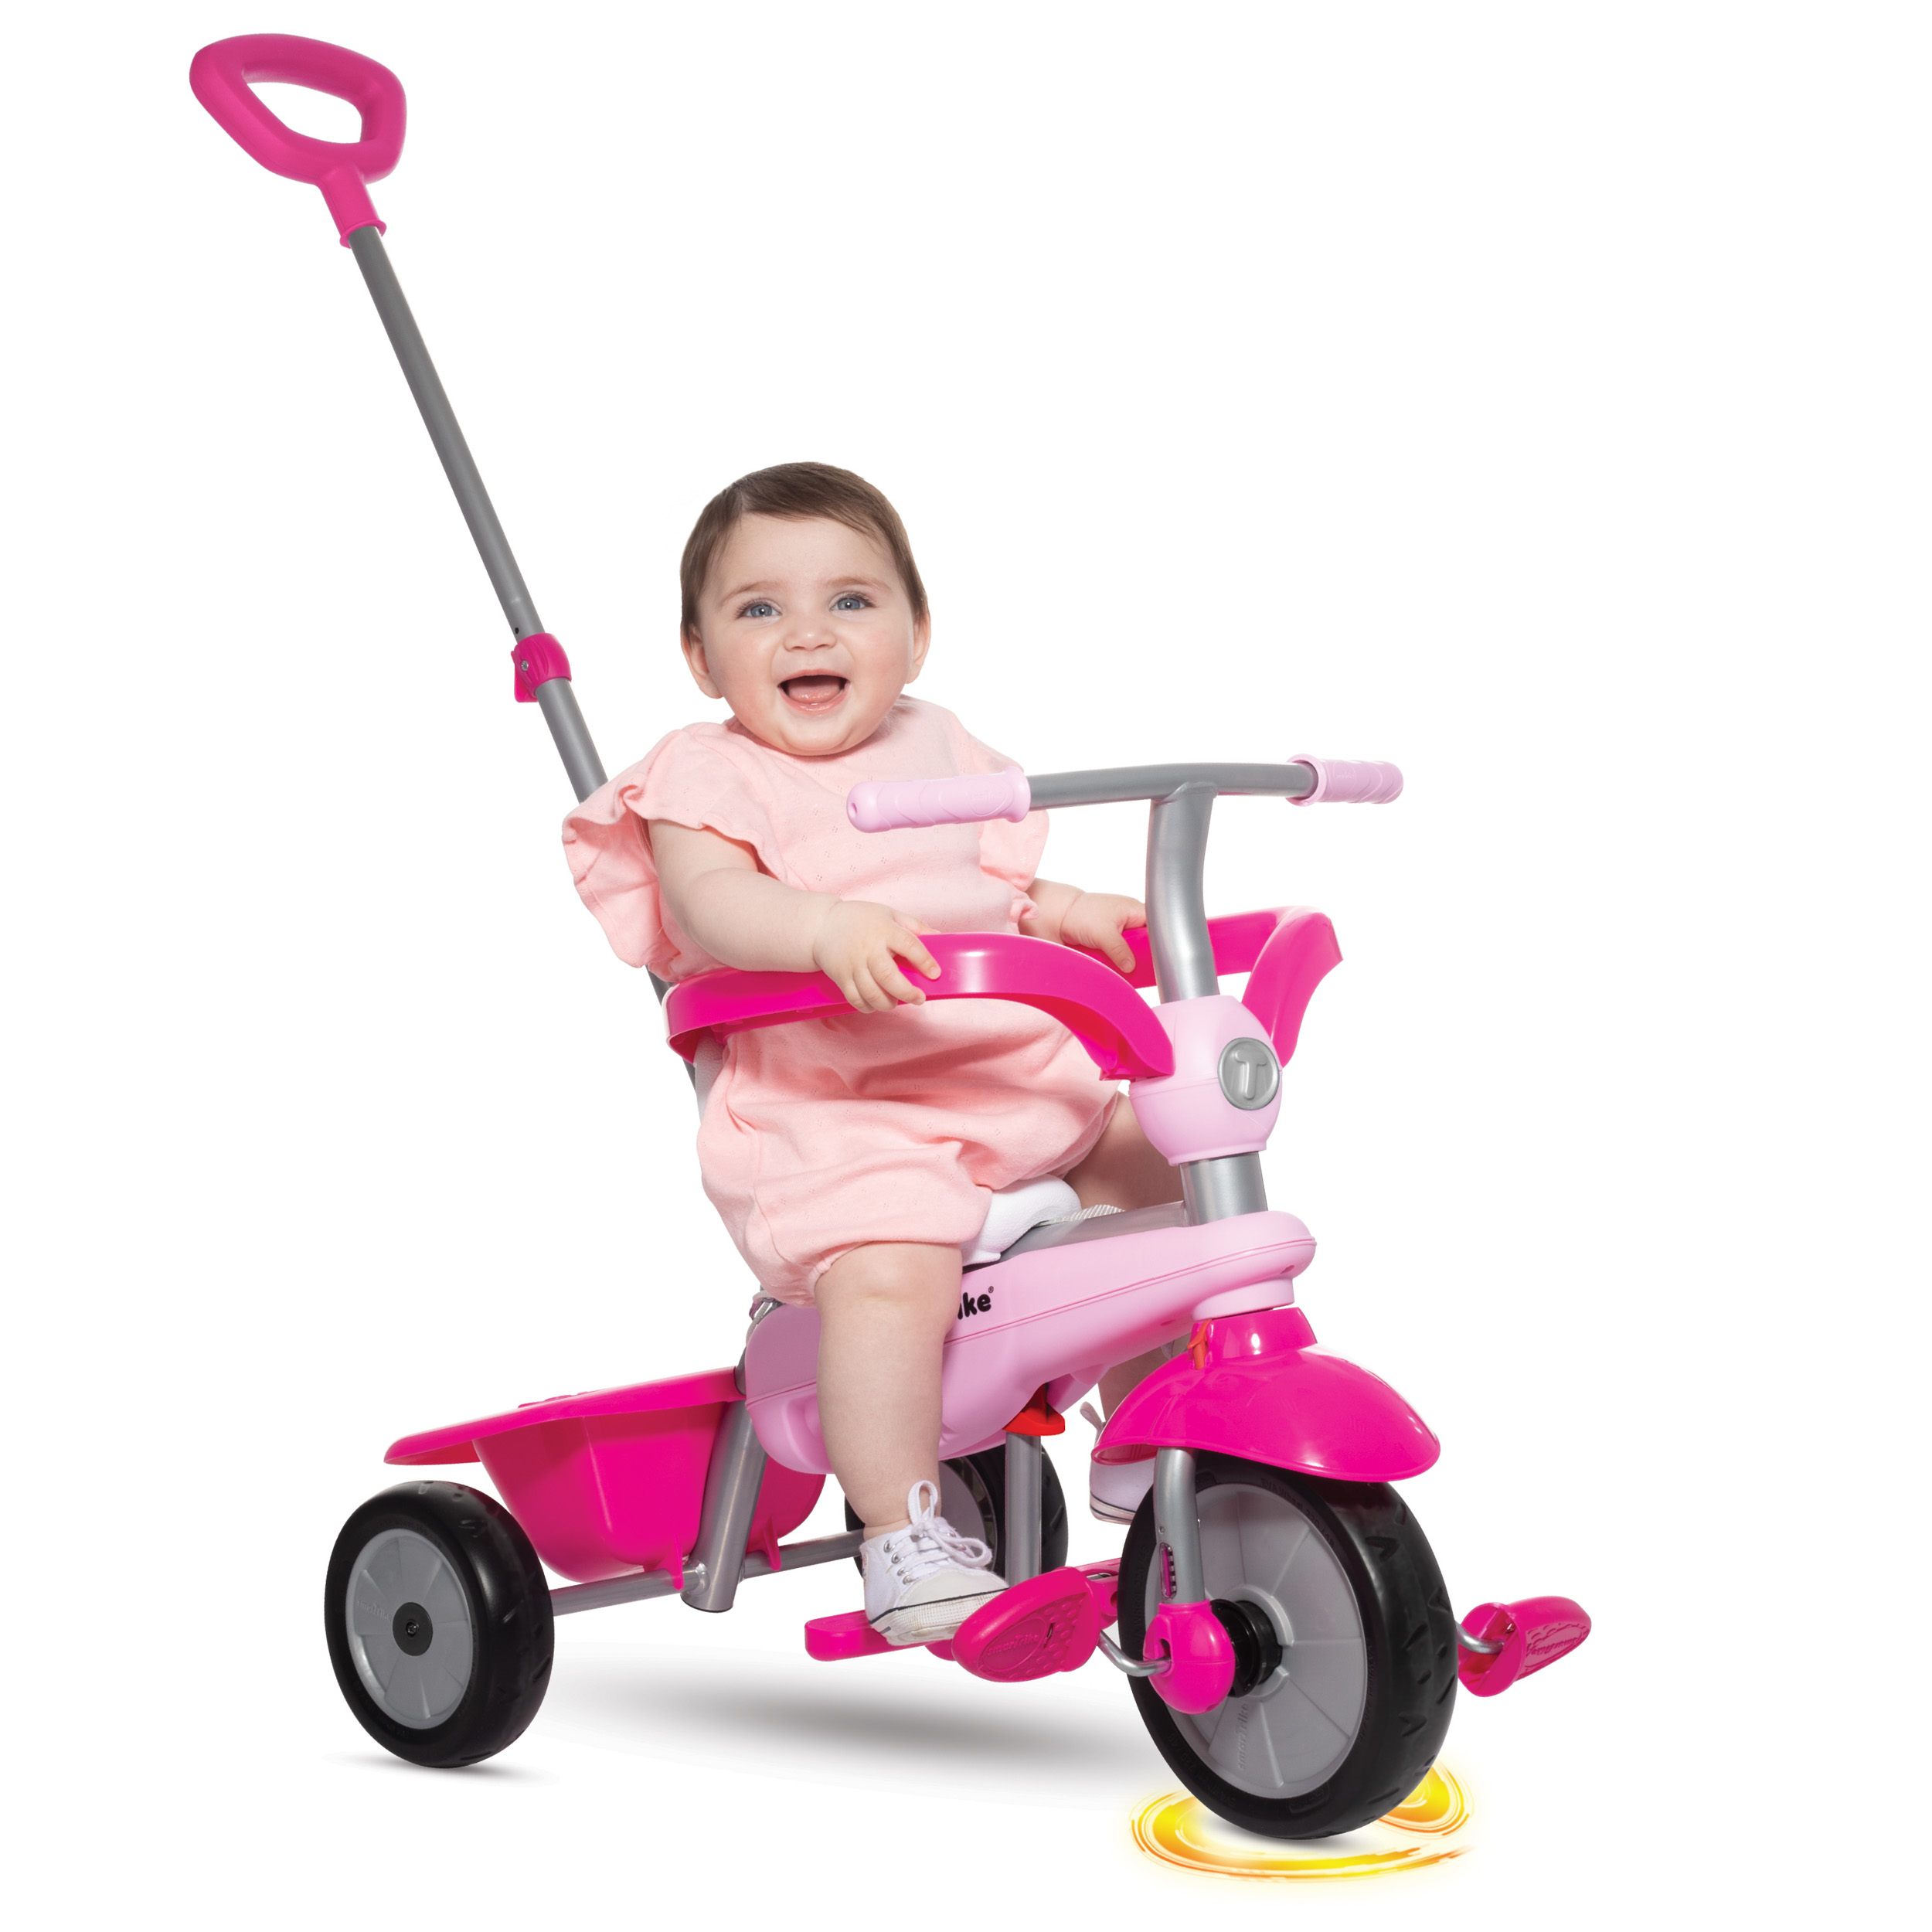 d529f5fb0f4 smarTrike Lollipop 3 in 1 Trike, Blue - Walmart.com